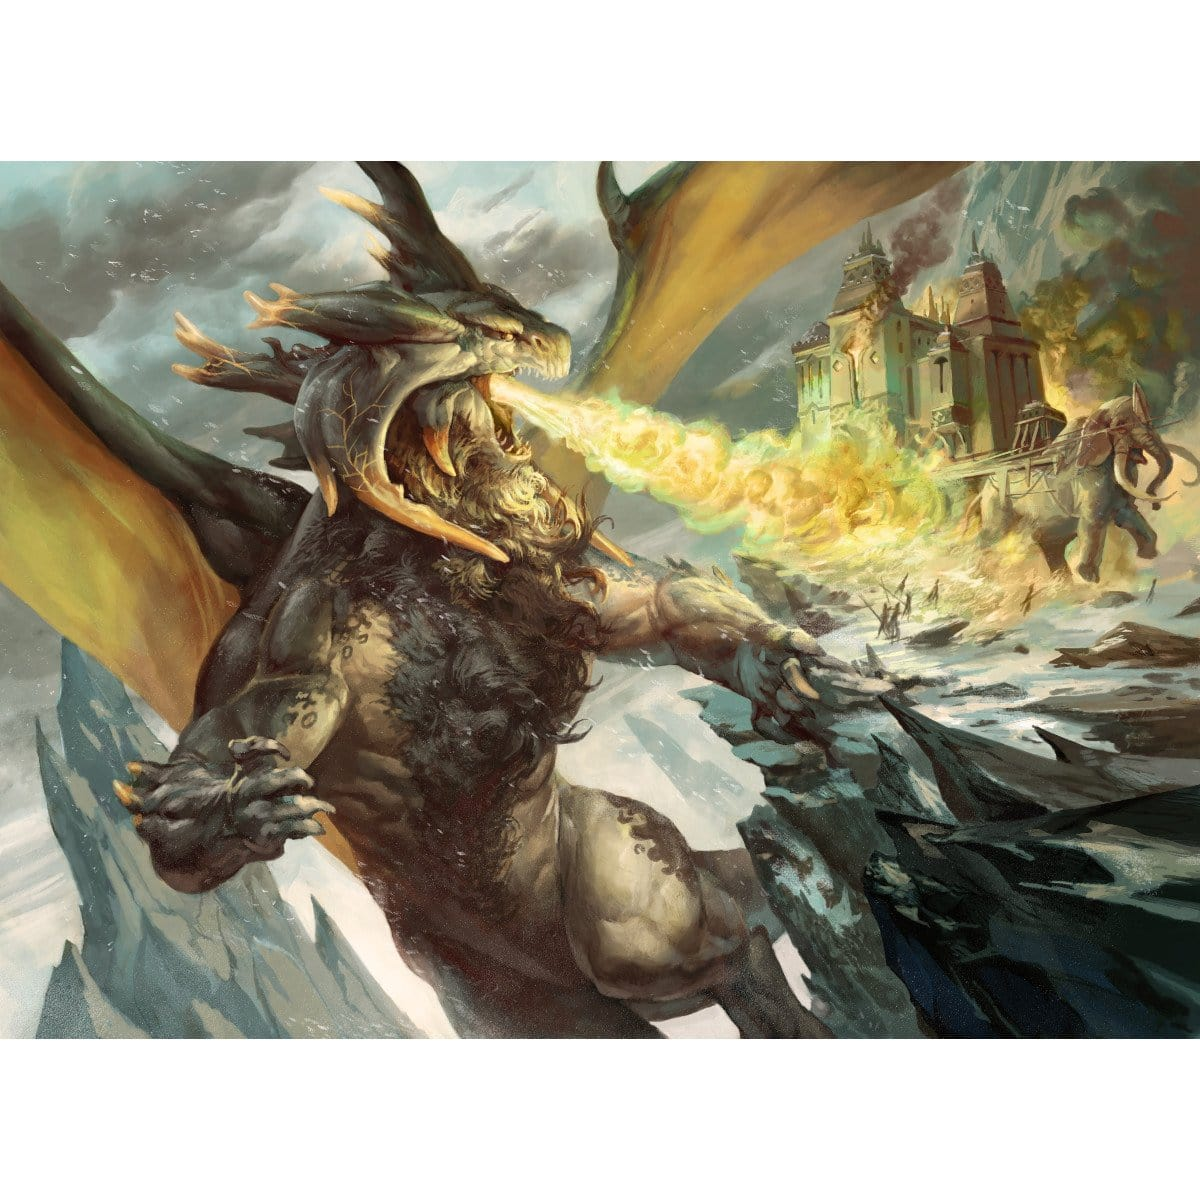 Destructor Dragon Print - Print - Original Magic Art - Accessories for Magic the Gathering and other card games